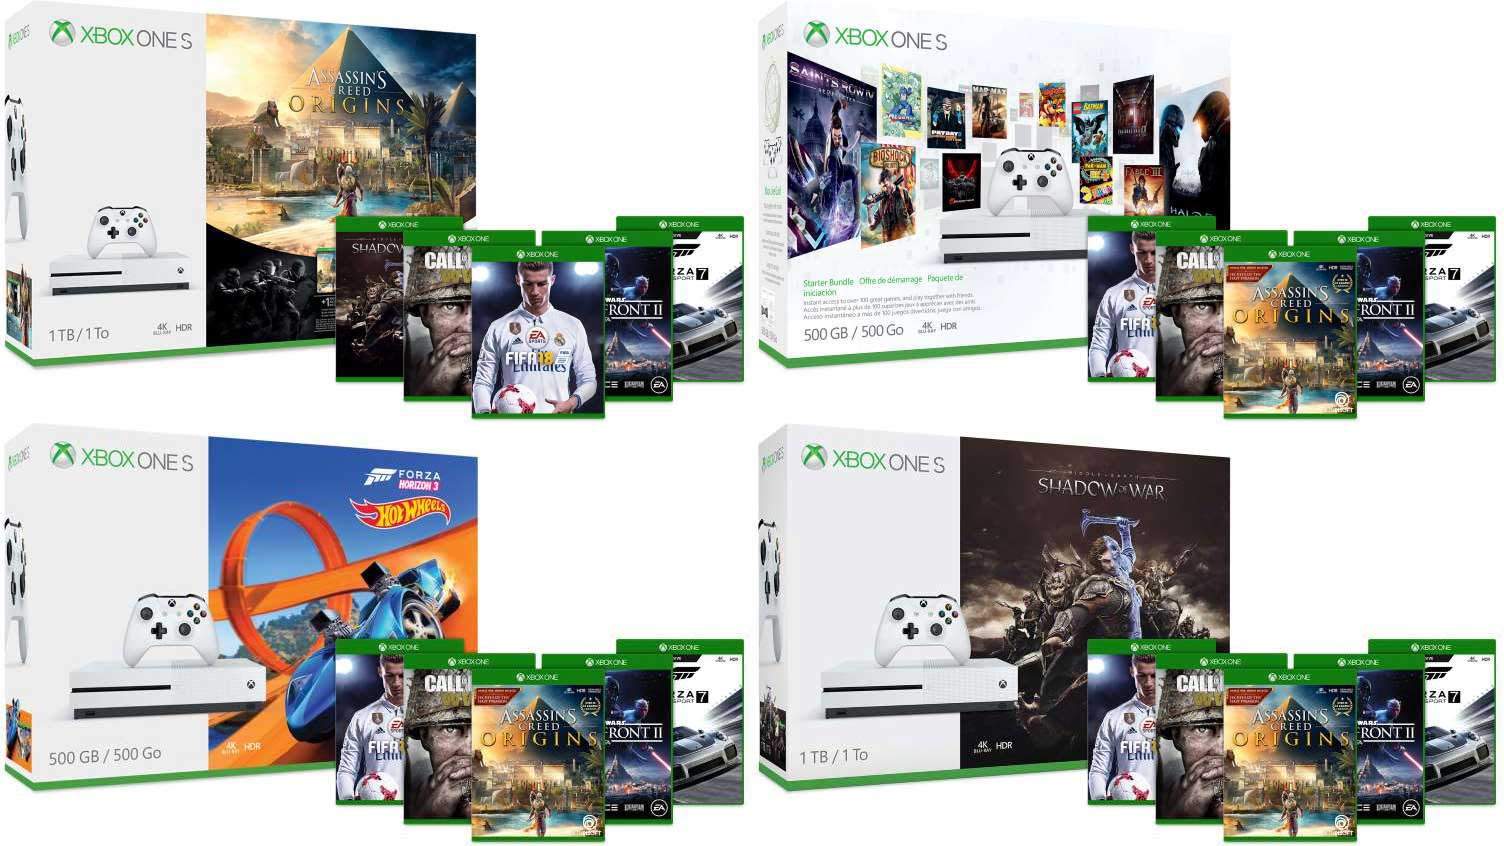 Pre-holiday Xbox One S deals start at $199, bundles with free COD: WWII screenshot